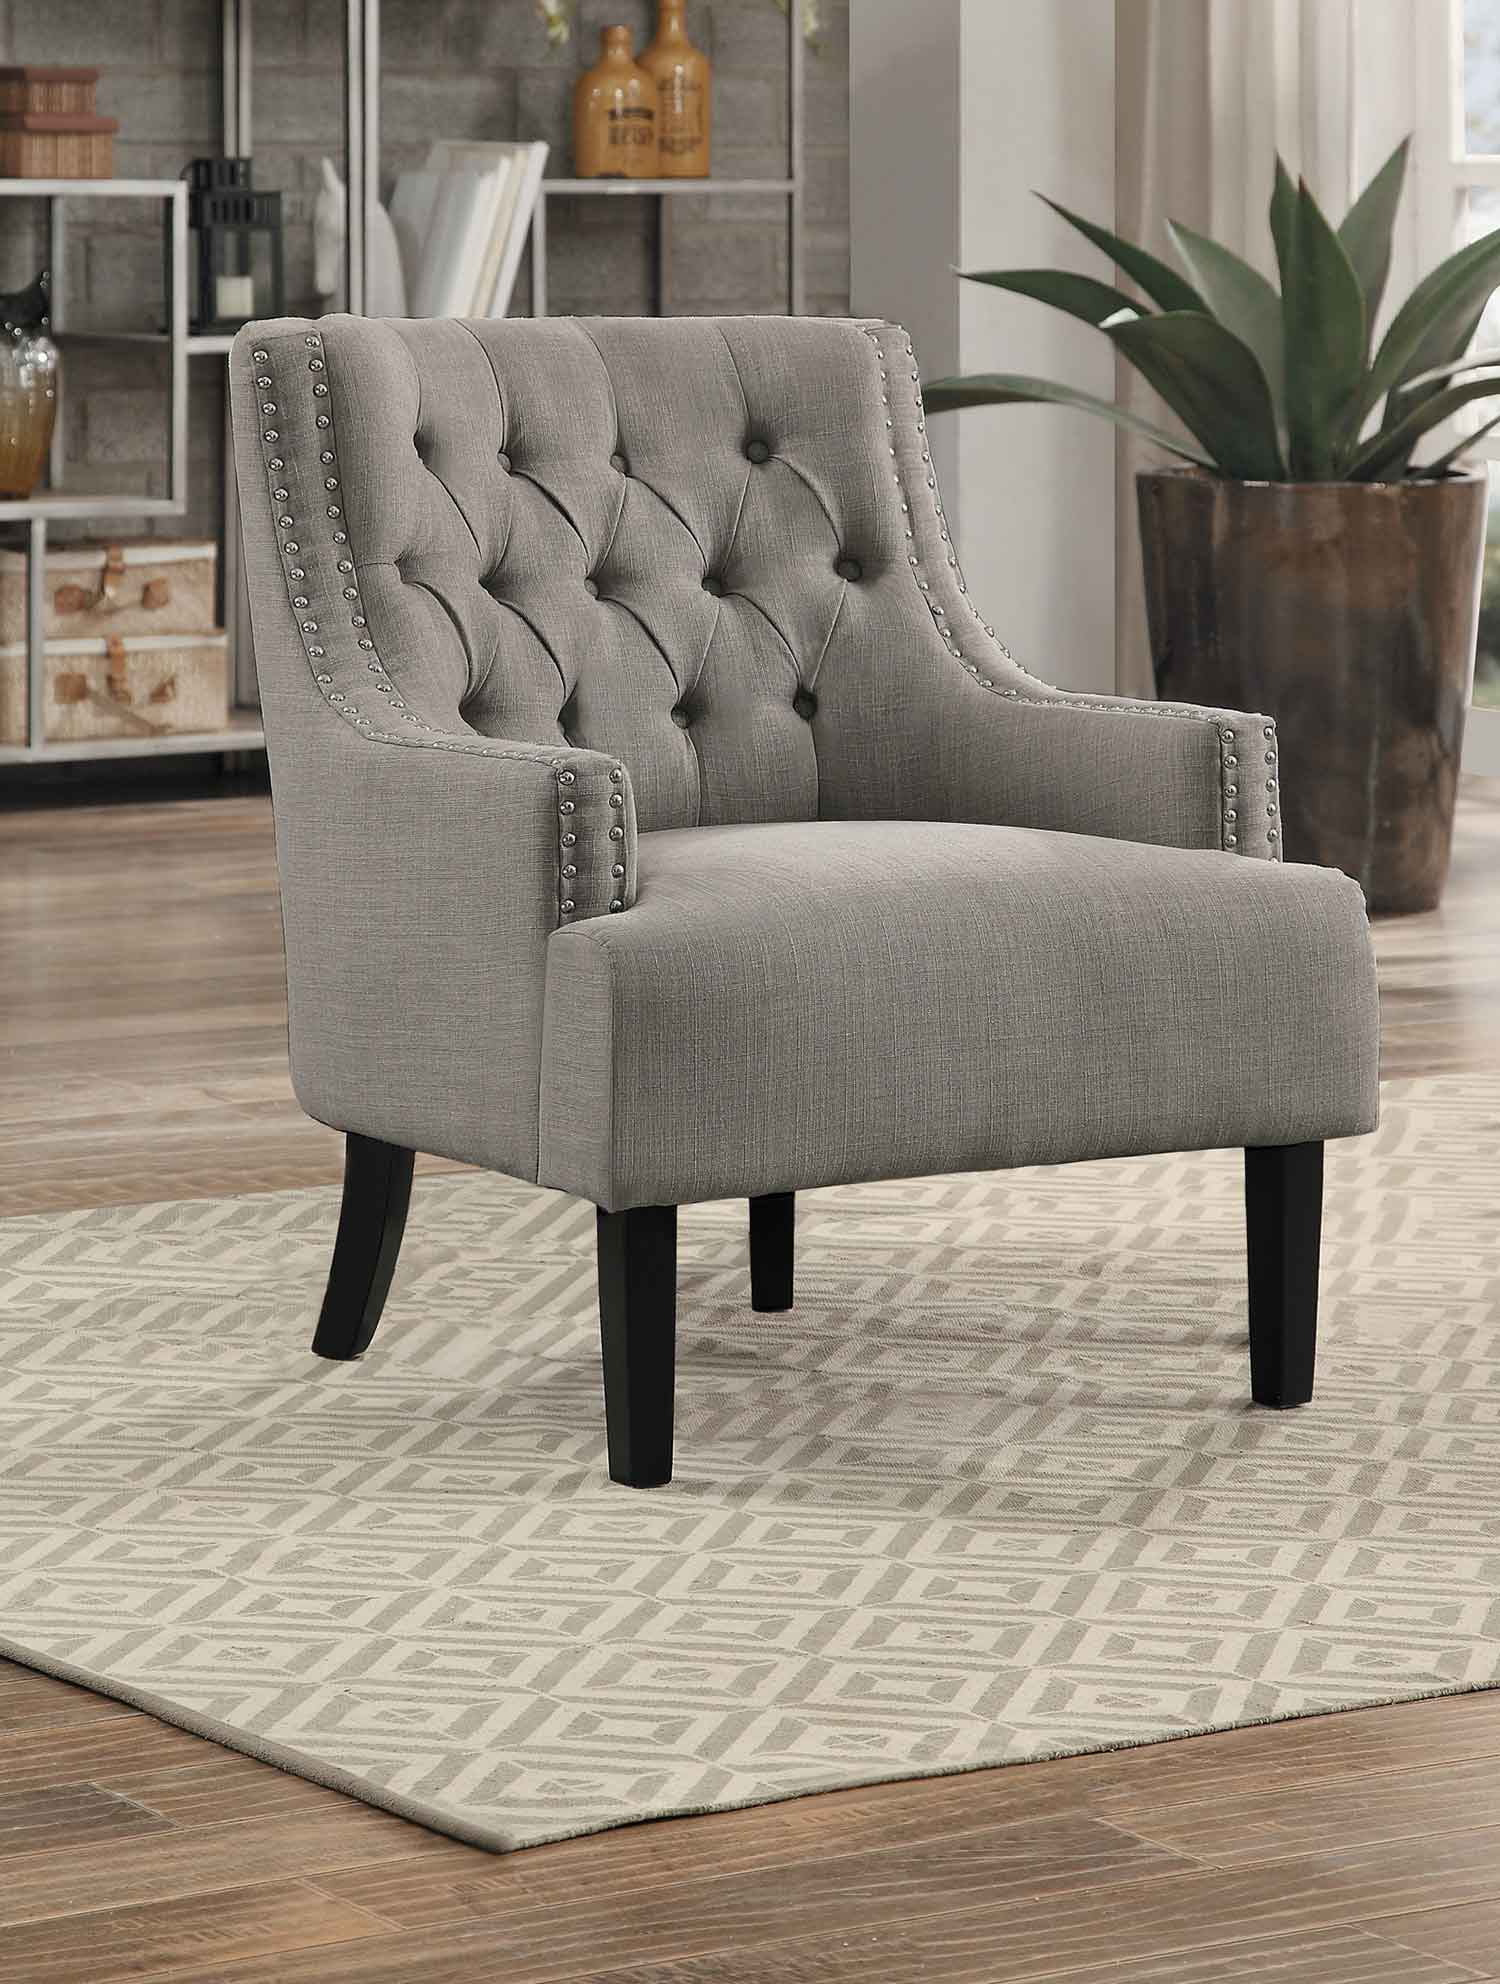 Homelegance Charisma Accent Chair - Taupe